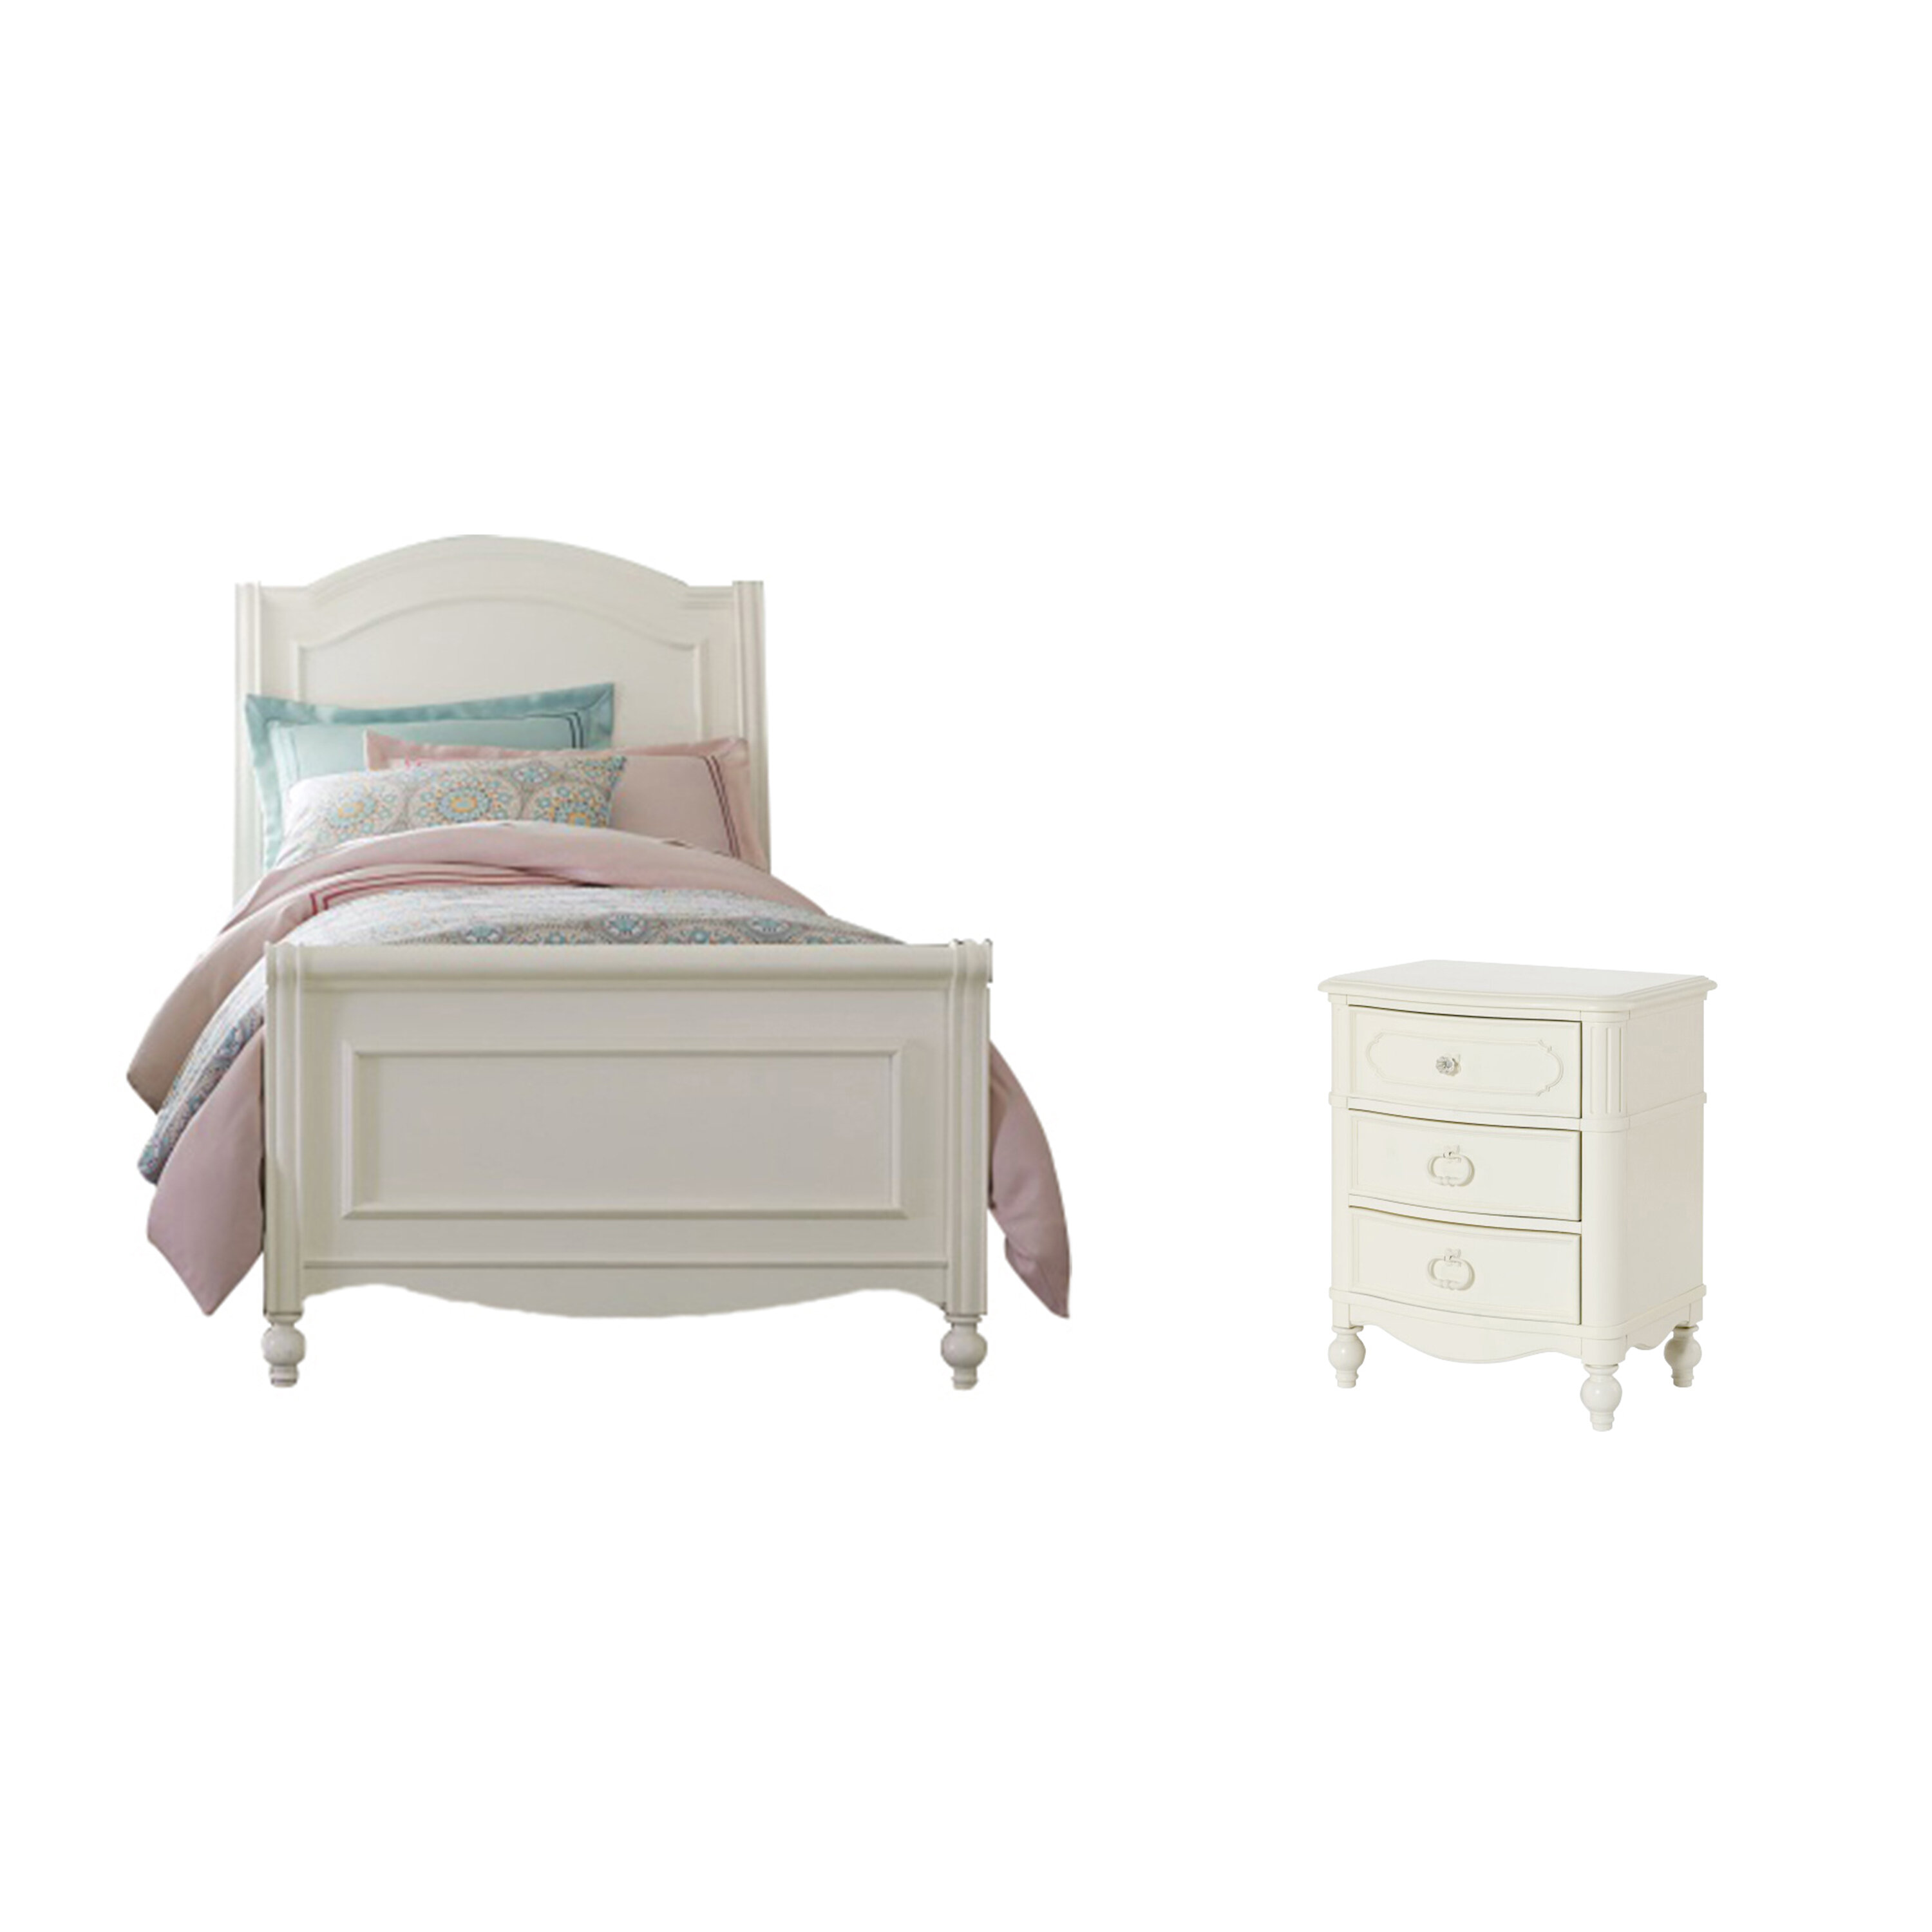 Wendy Bellissimo by LC Kids Harmony by Wendy Bellissimo Panel ...